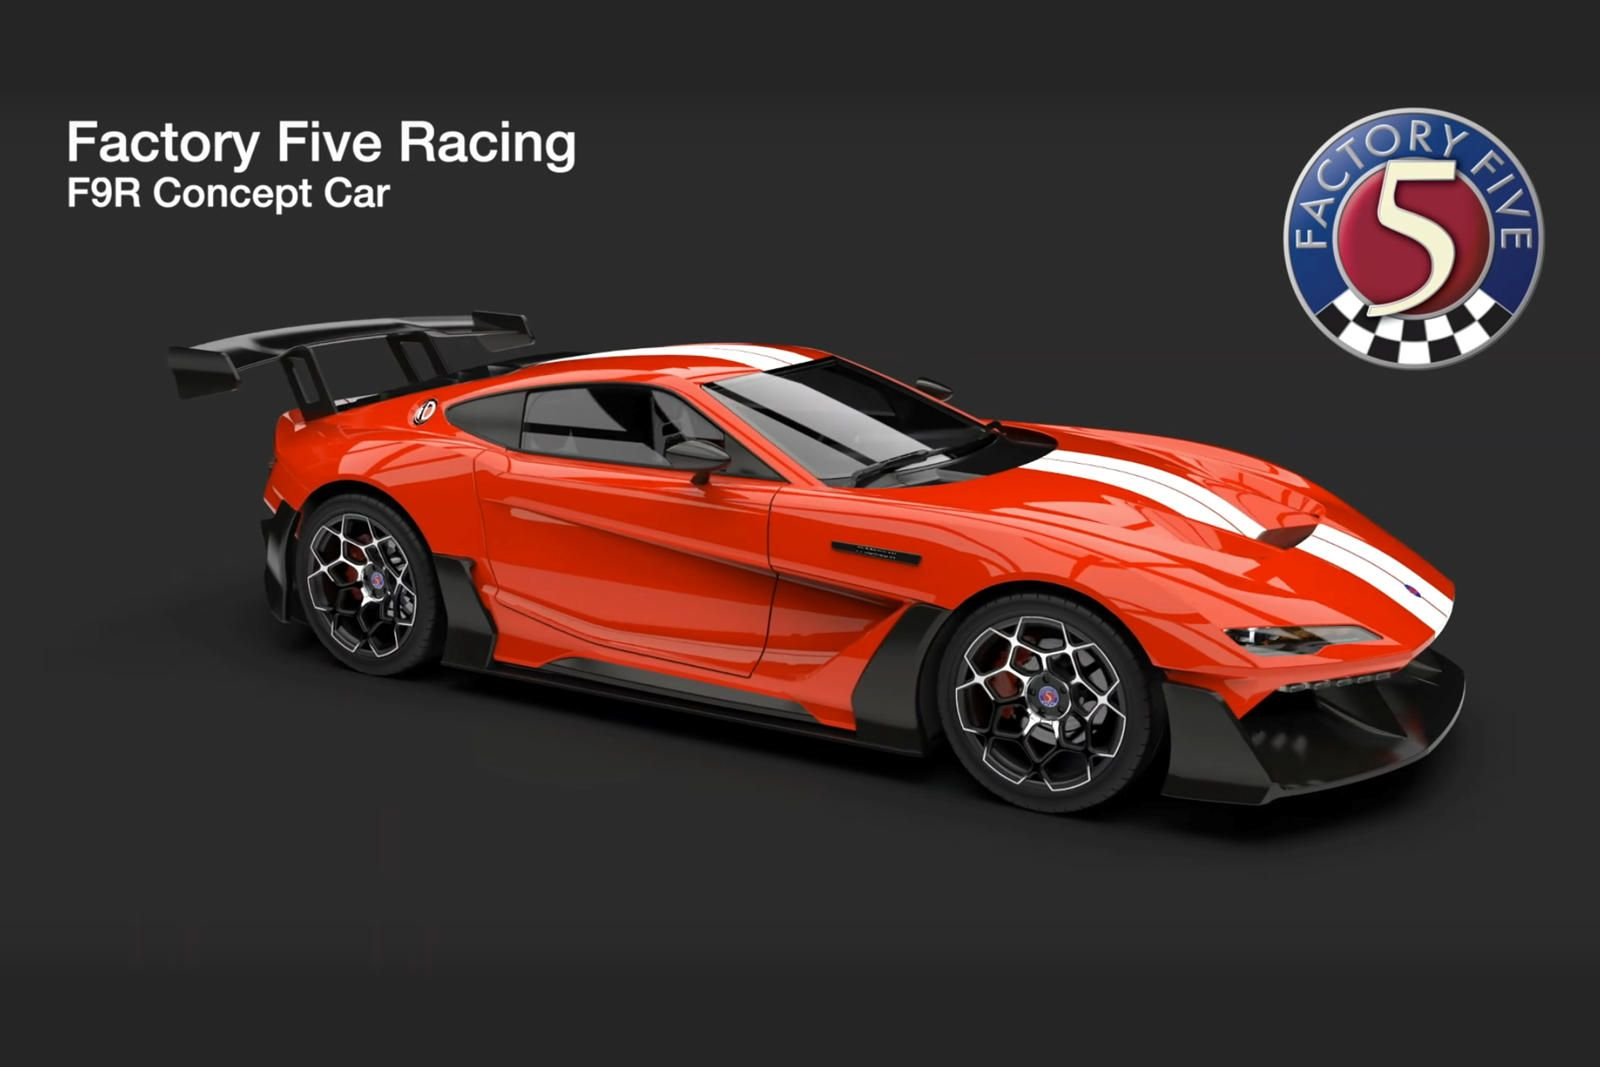 America S Next Supercar Is Almost Here Factory Five Has Produced Its First F9r Body And It Looks Magnificent In 2020 Super Cars Factory Five Dream Cars